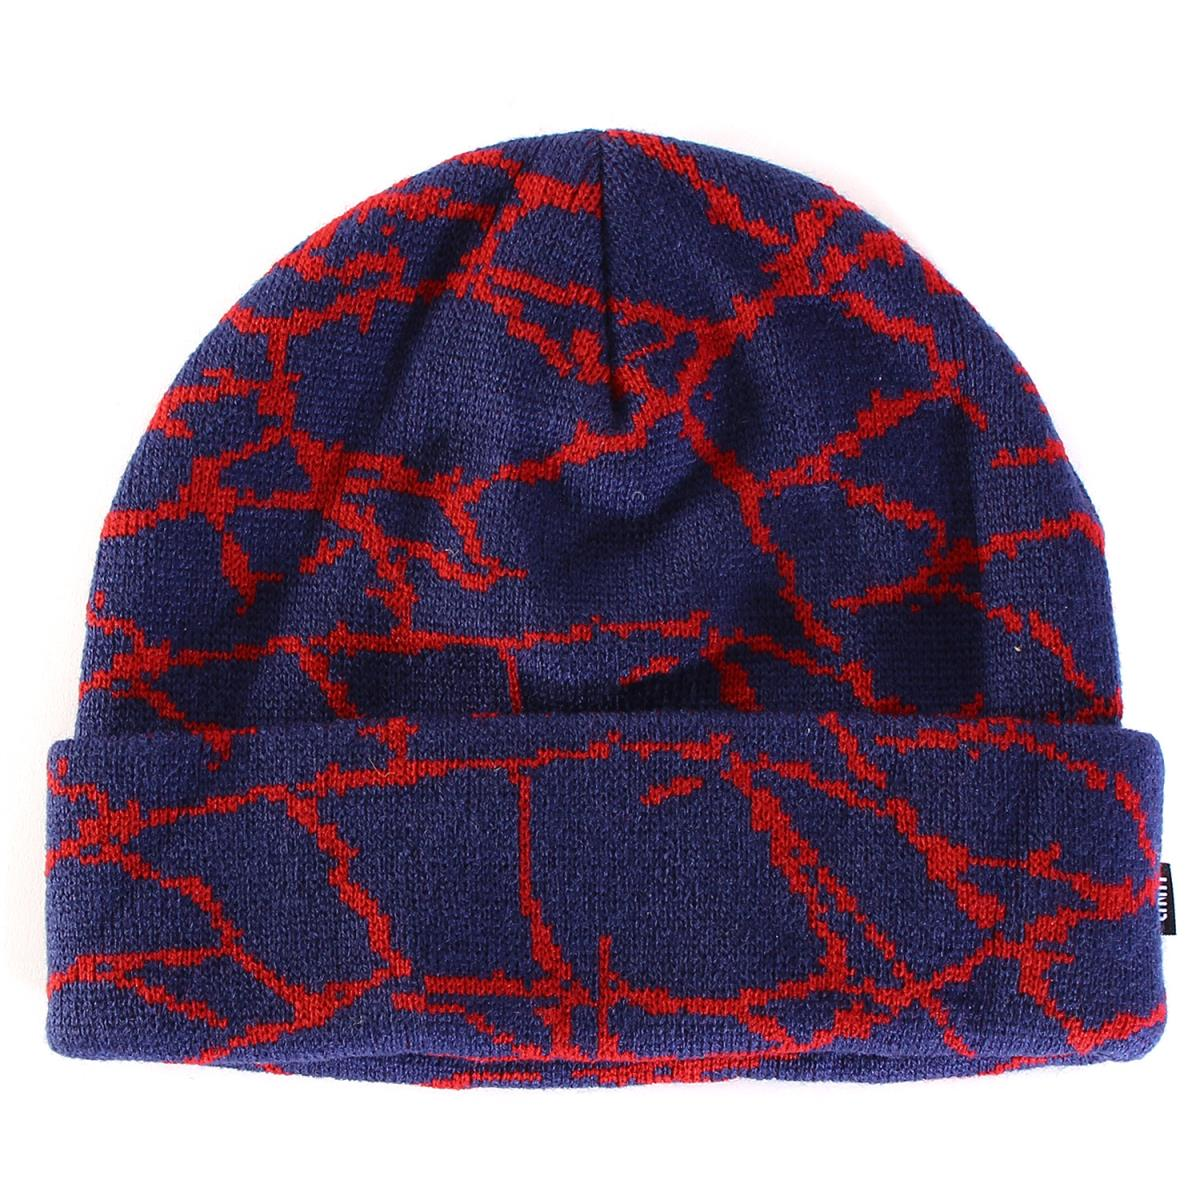 ed3484129dc UNDEFEATED (Andy fee Ted) sander whole pattern acrylic beanie (SIDELINE  BEANIE) knit cap blue X red